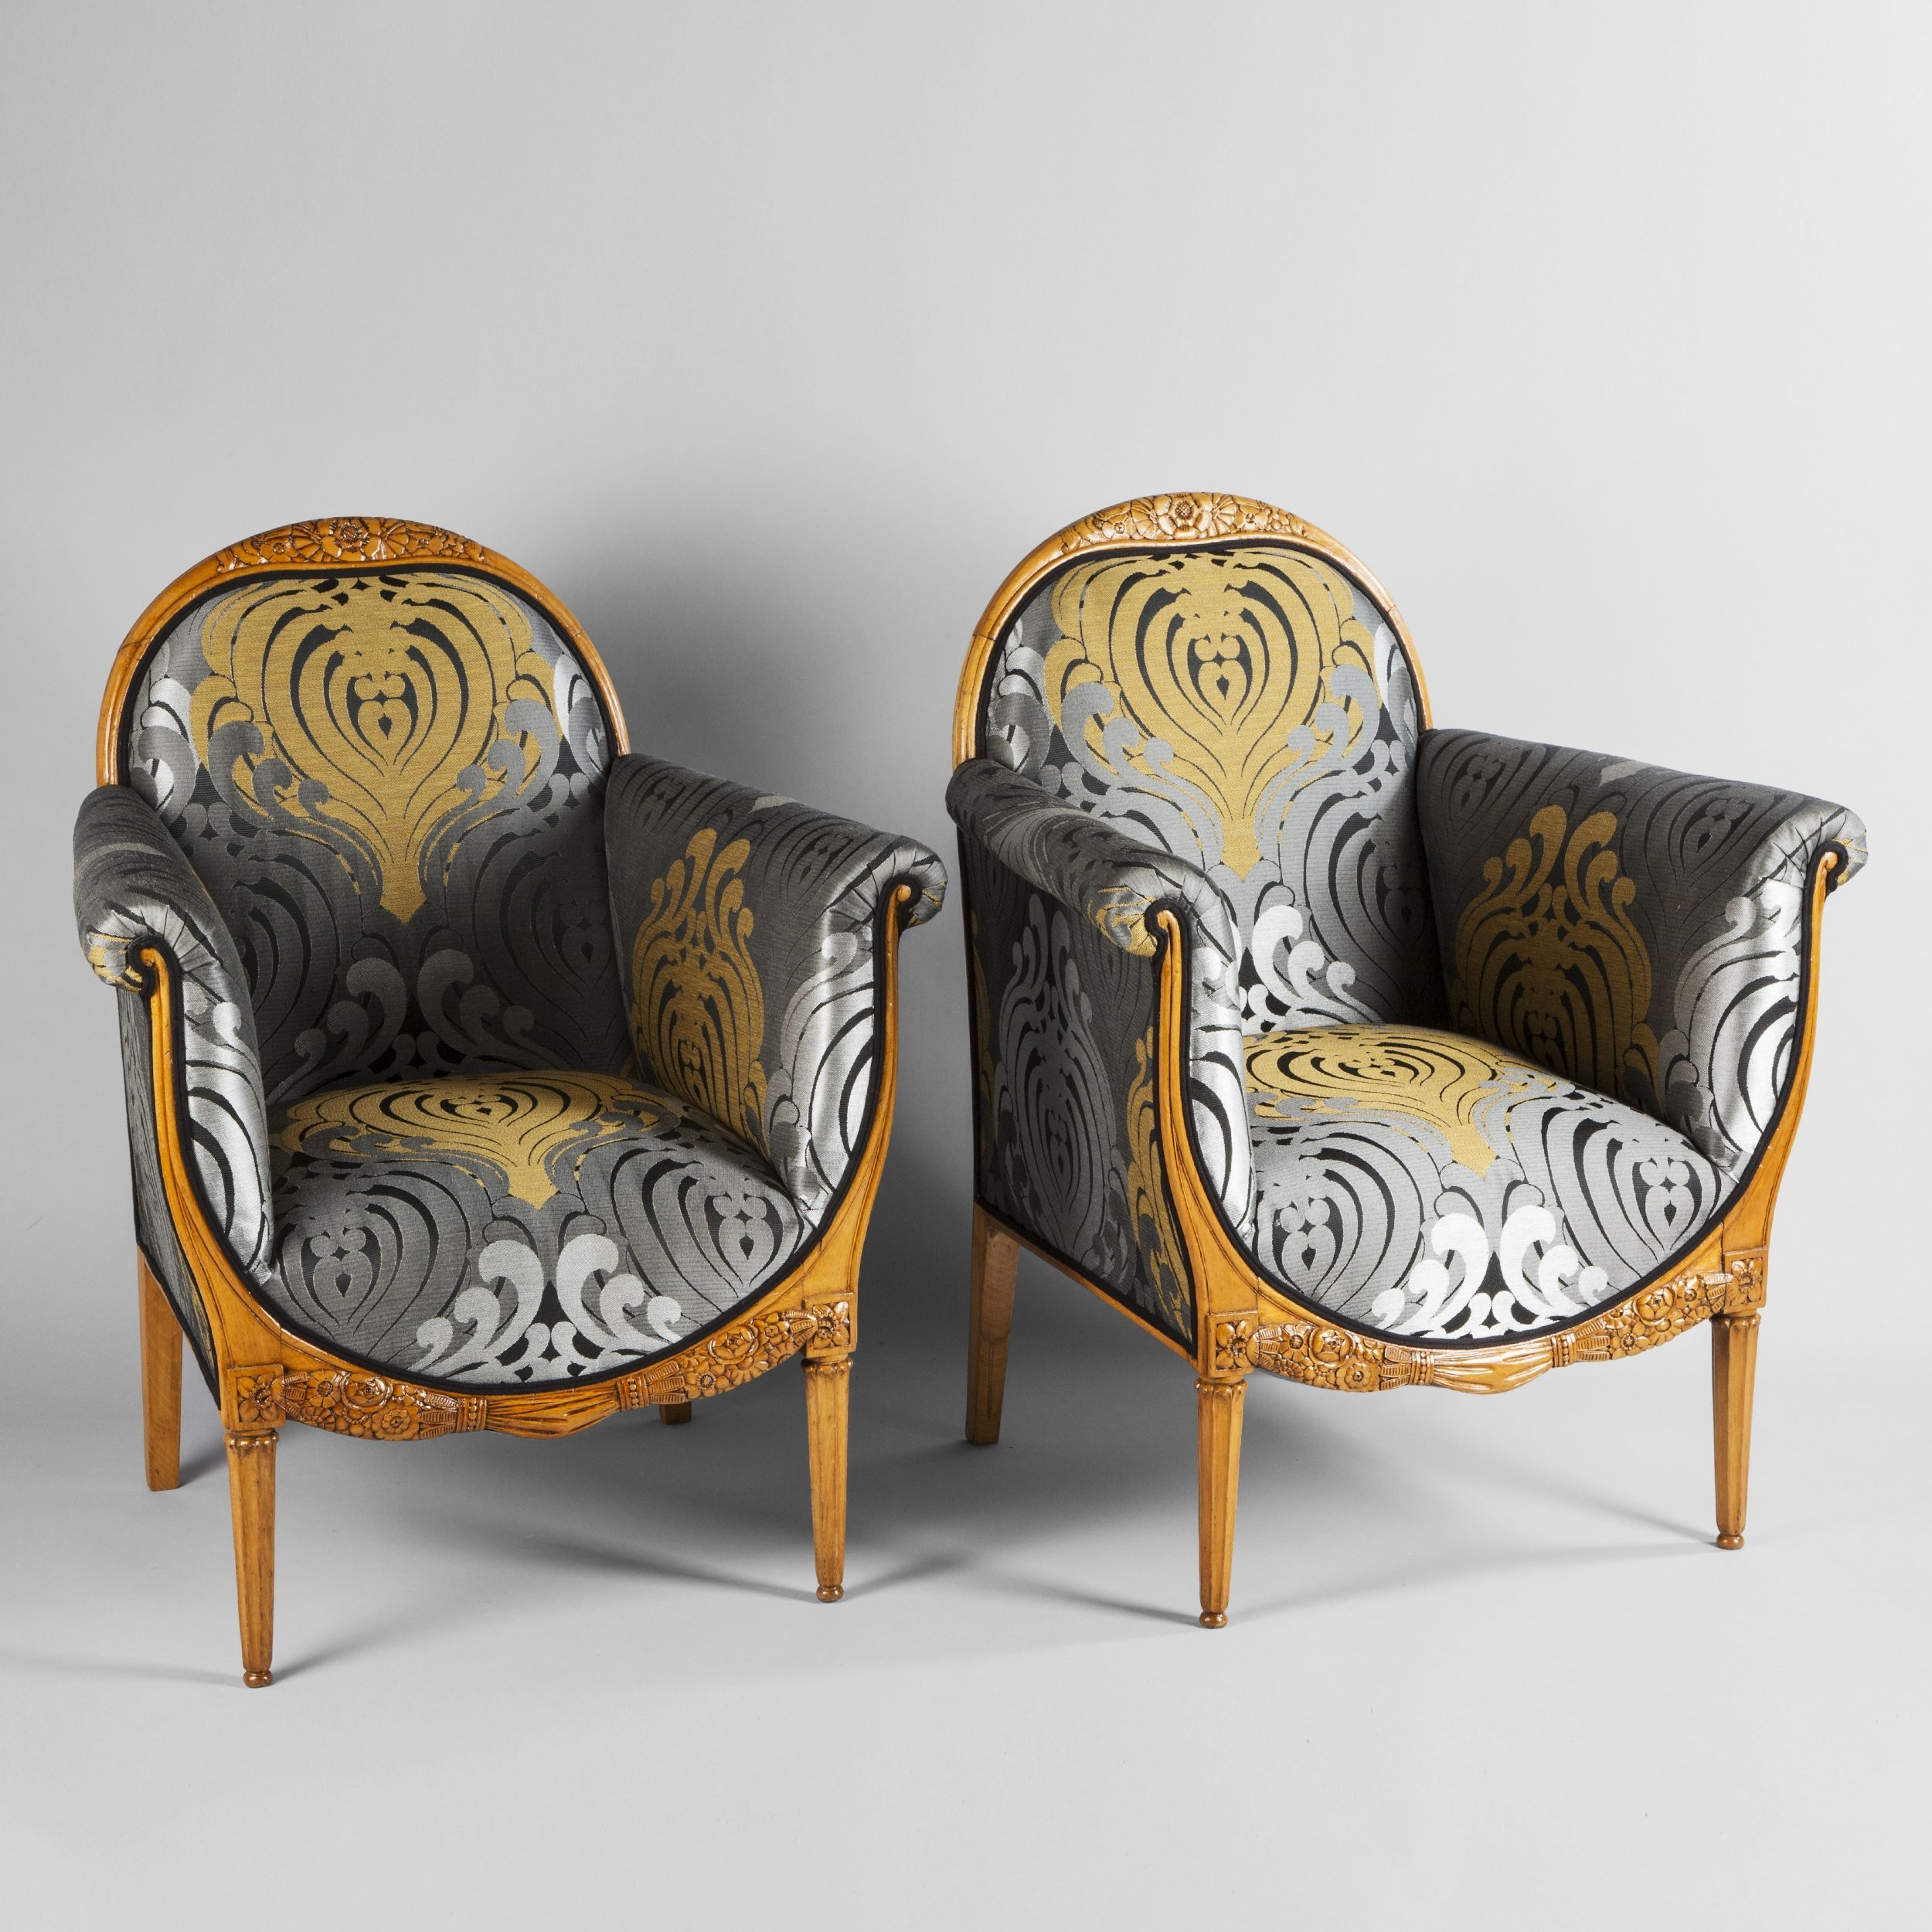 Candy Sessel Harlem Paul Follot Two Bergere Armchairs Circa 1930 Paul Follot Two